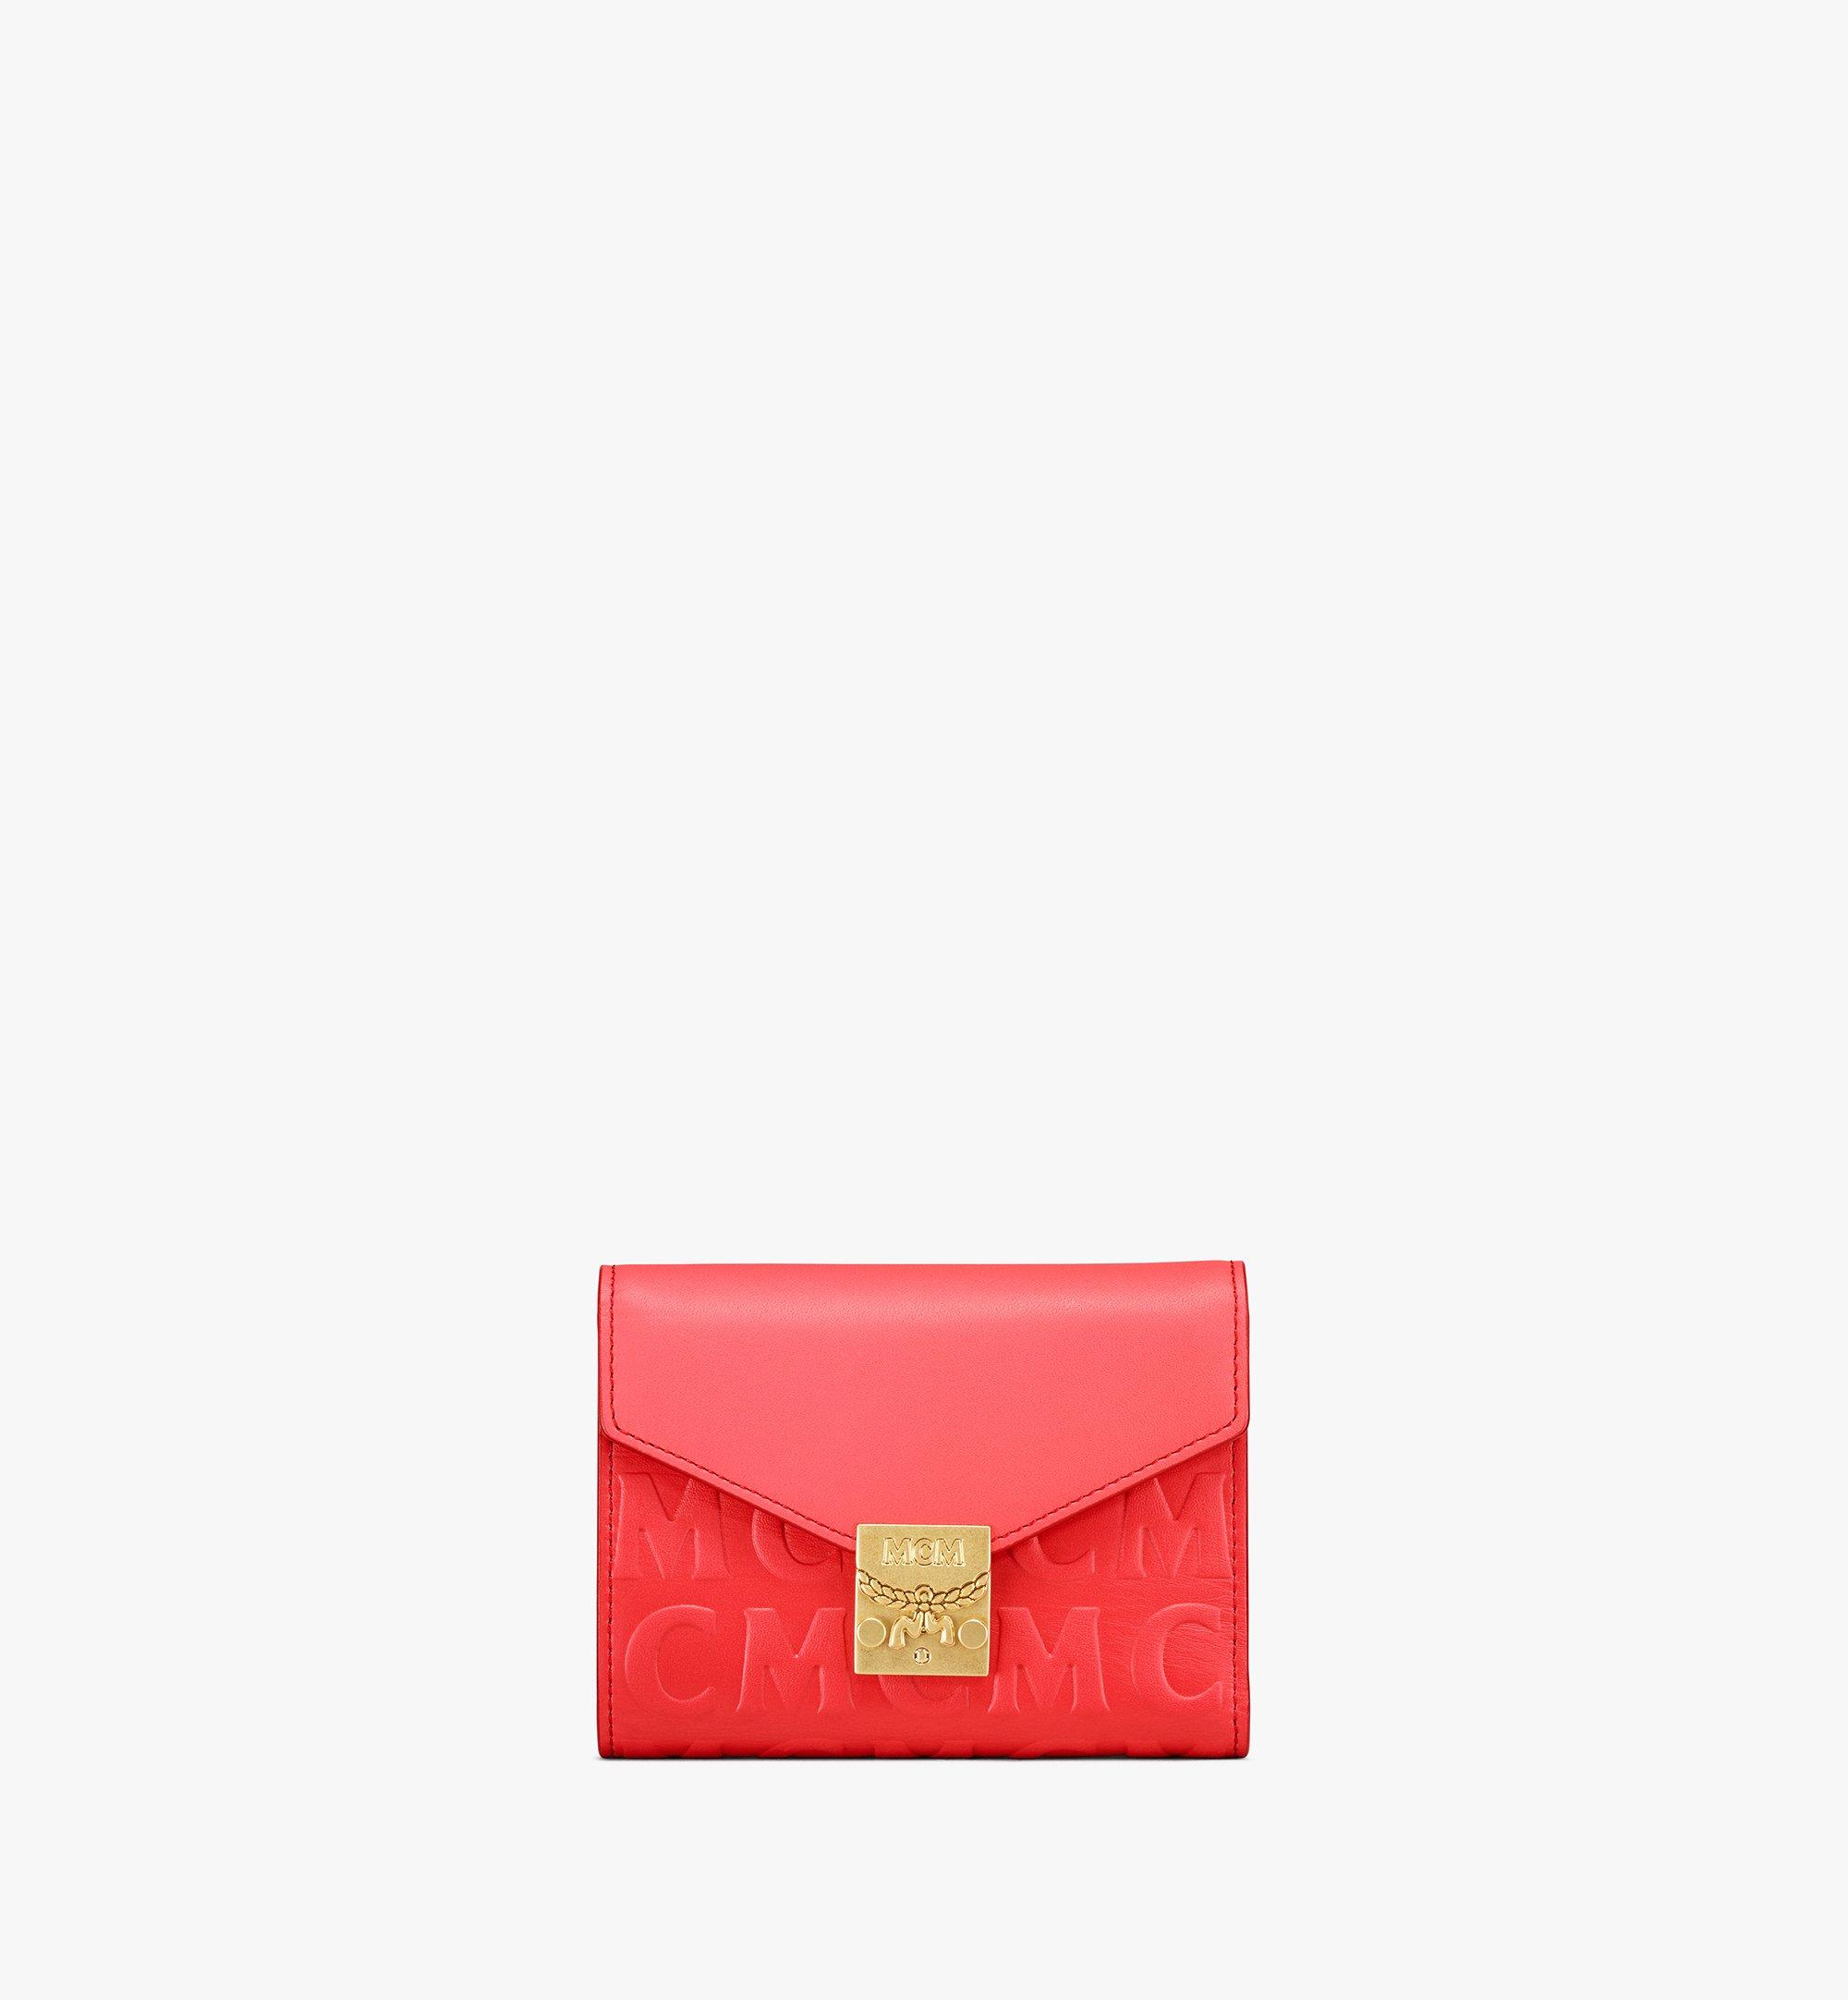 MCM Patricia Trifold Wallet in MCM Monogram Leather Red MYSAAPA06RP001 Alternate View 1